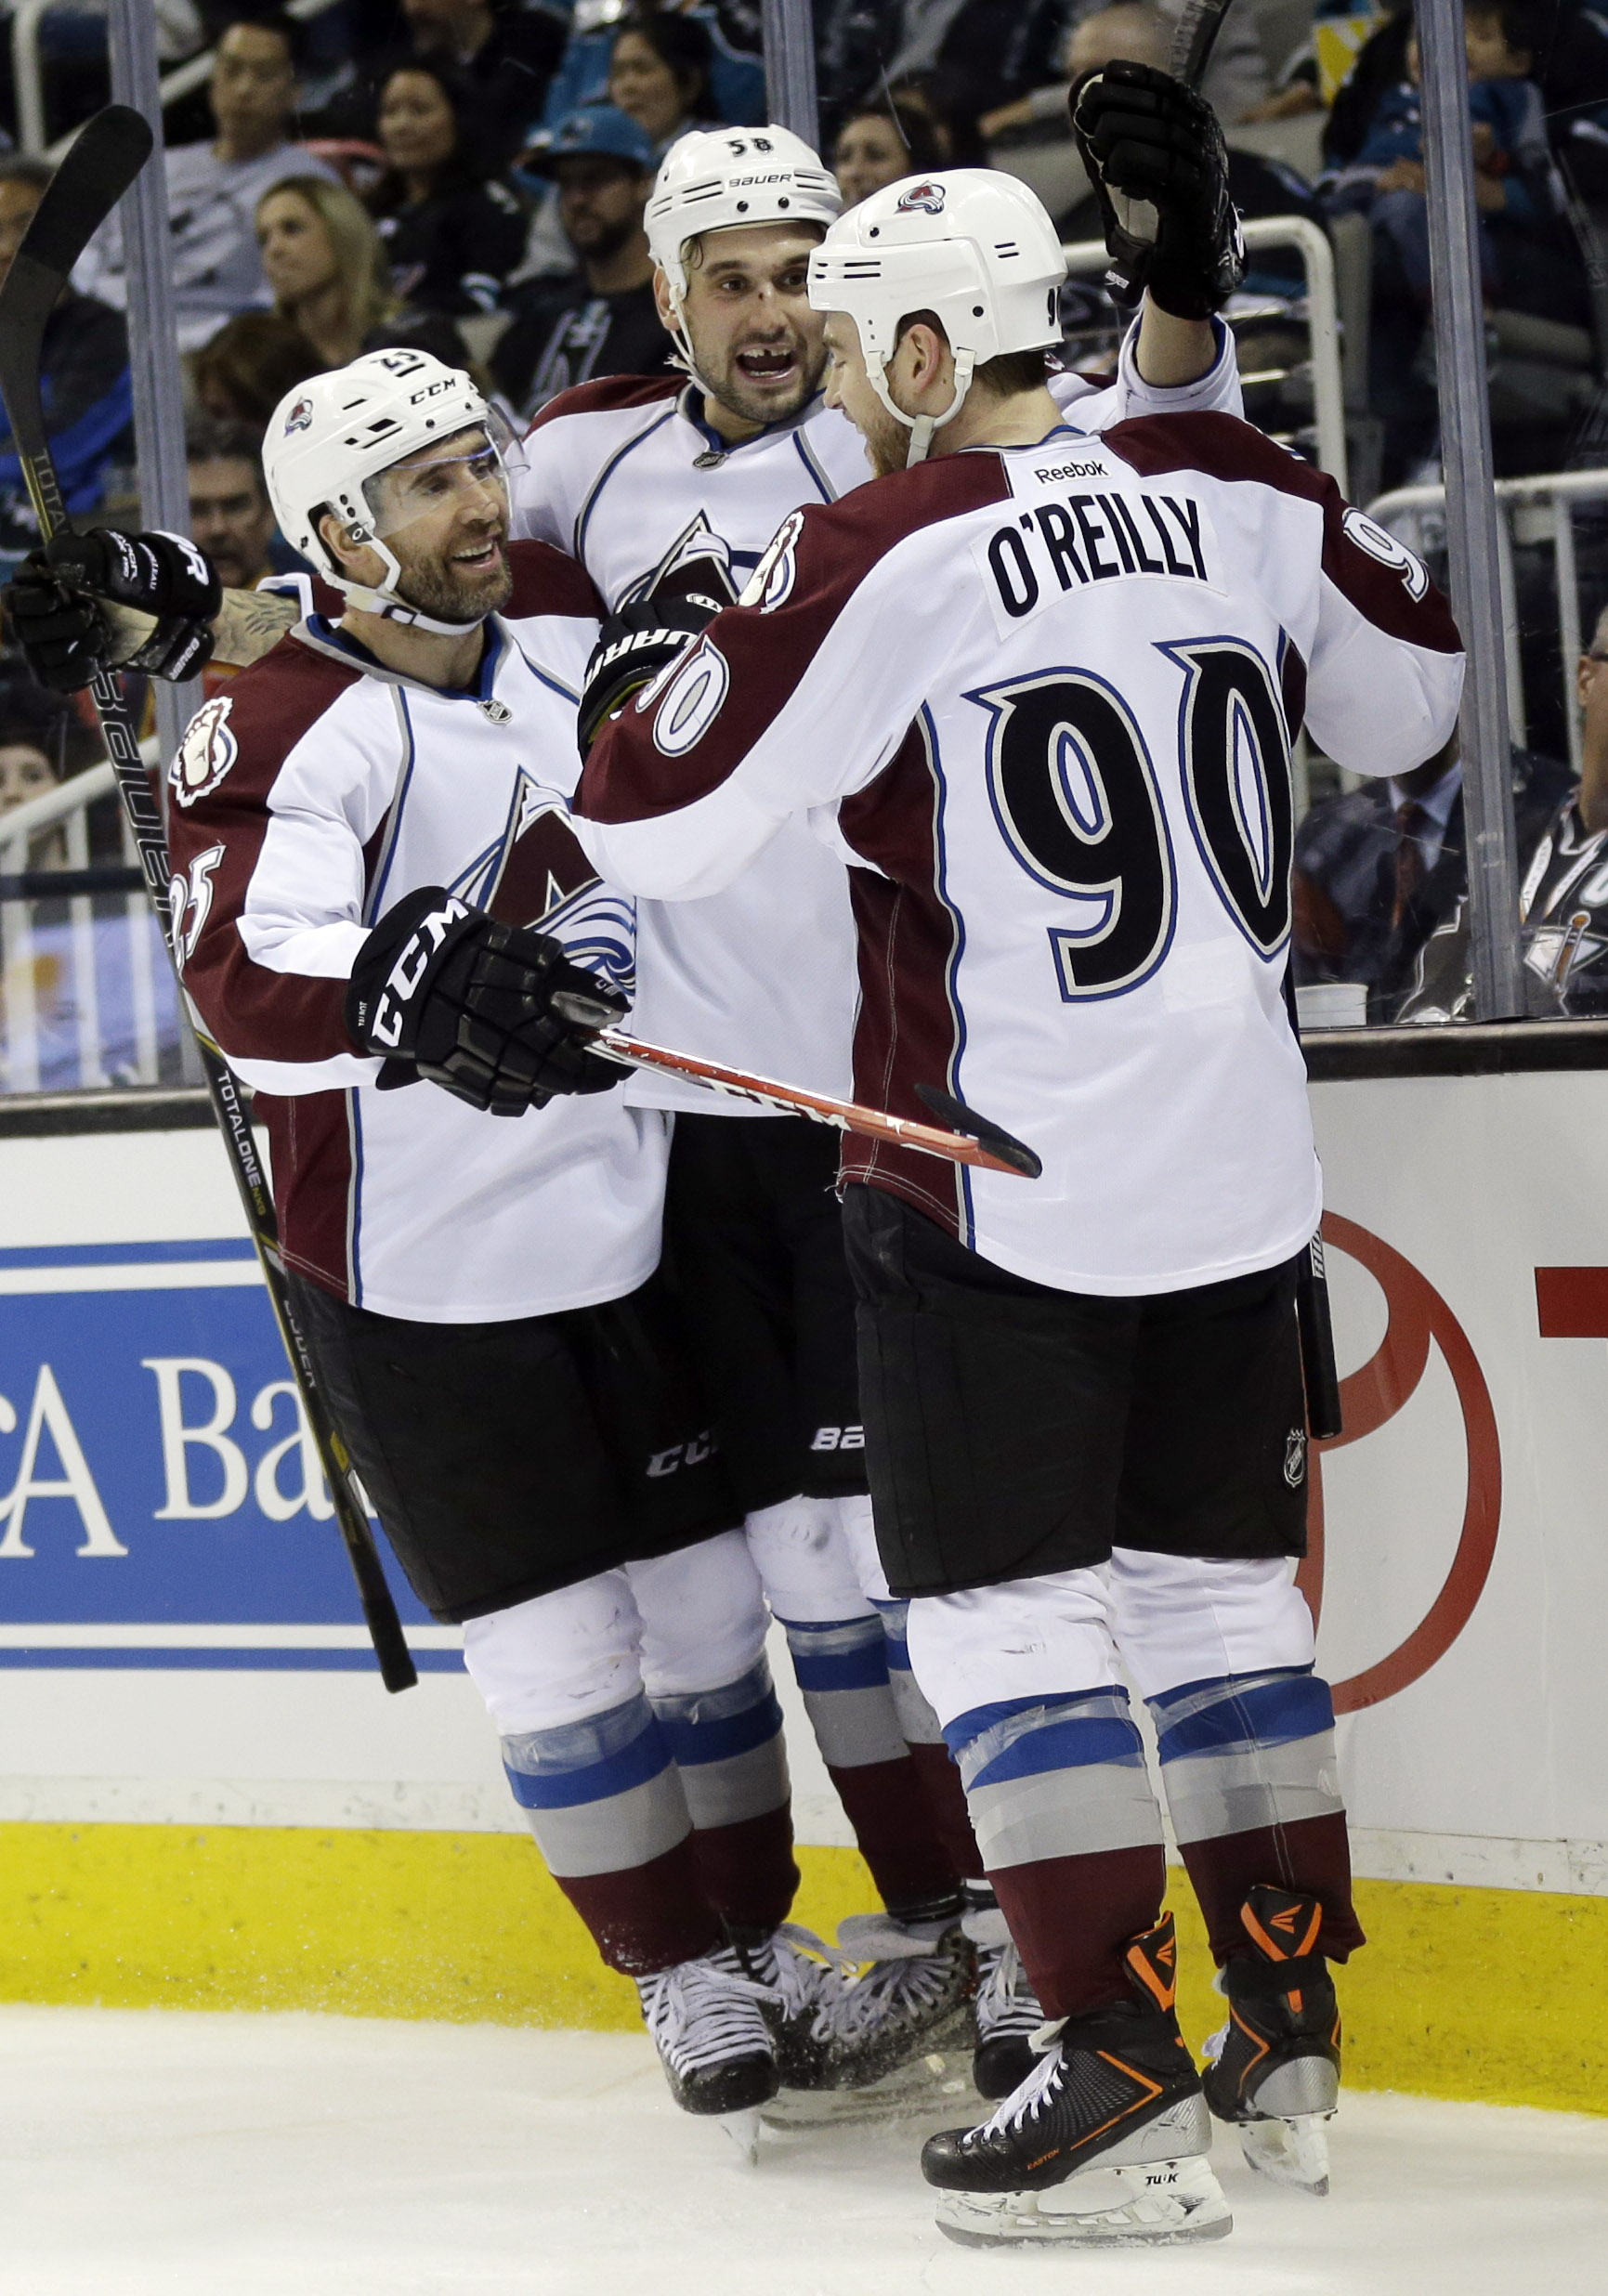 Colorado Avalanche's Patrick Bordeleau, center, celebrates his goal with teammates Ryan O'Reilly (90) and Maxime Talbot, left, during the second period of an NHL hockey game against the San Jose Sharks on Friday, April 11, 2014, in San Jose, Calif